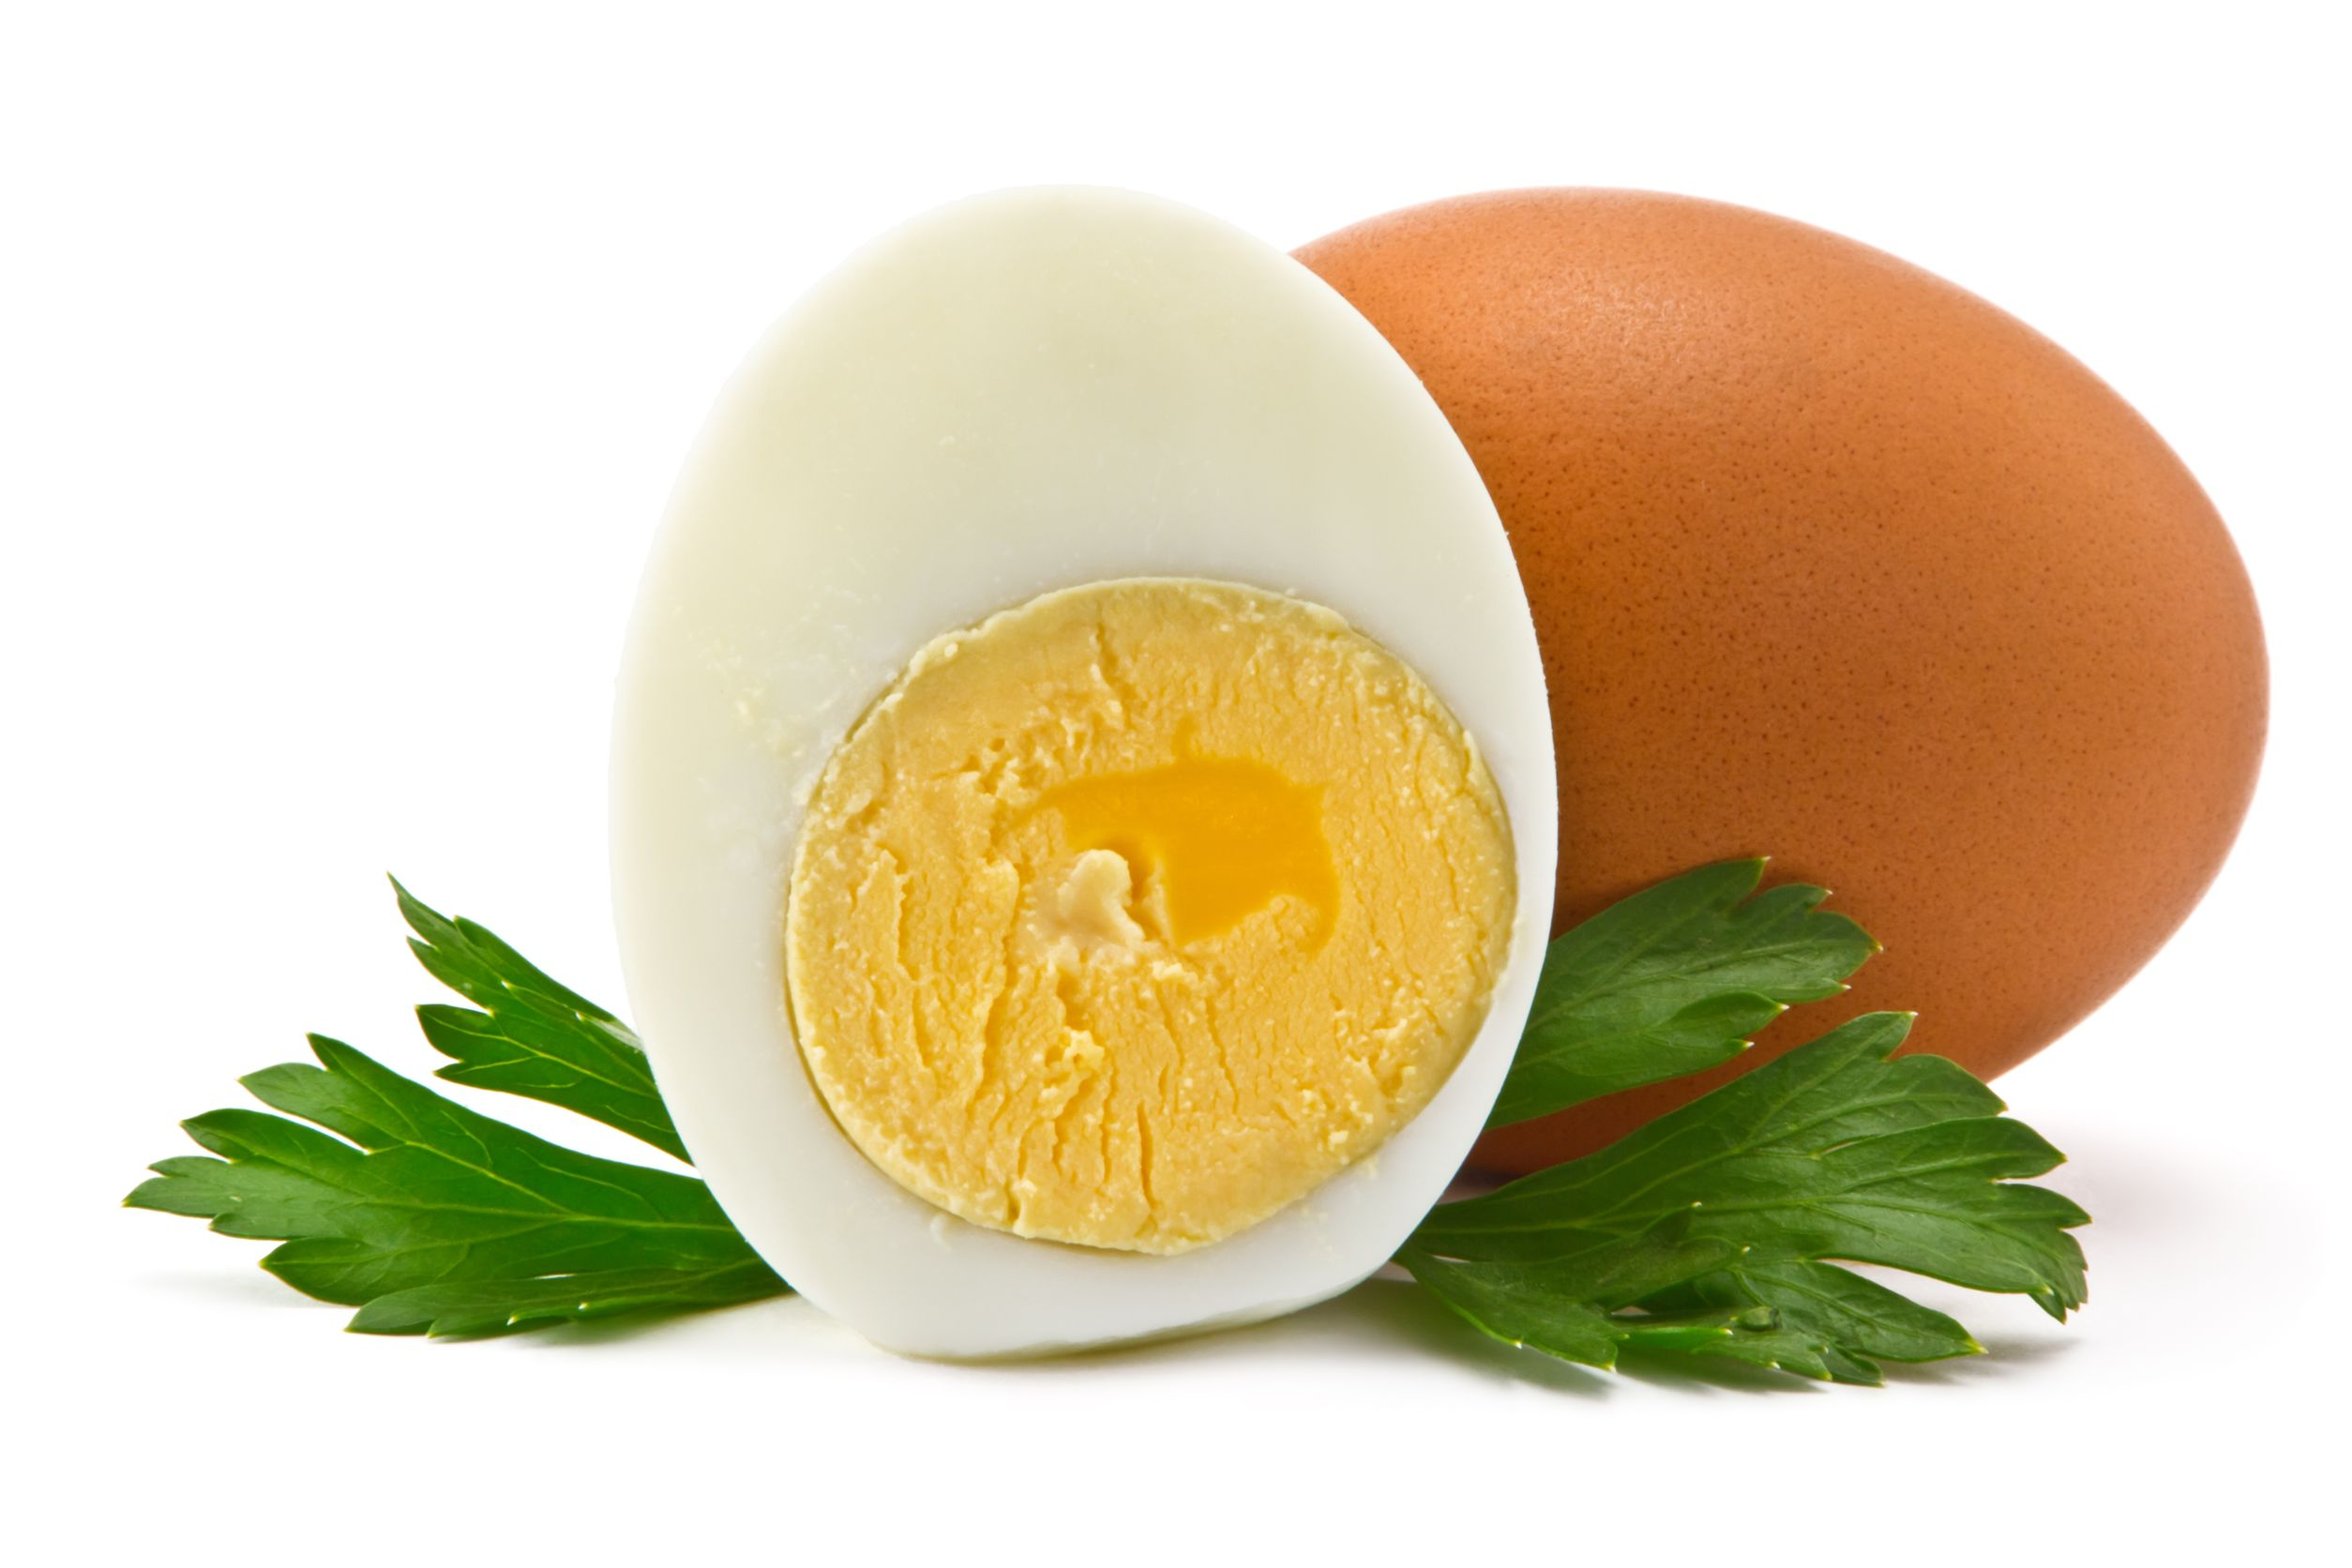 pilotl39130800052.jpg - one egg and half a boiled egg with parsley leaves on a white background